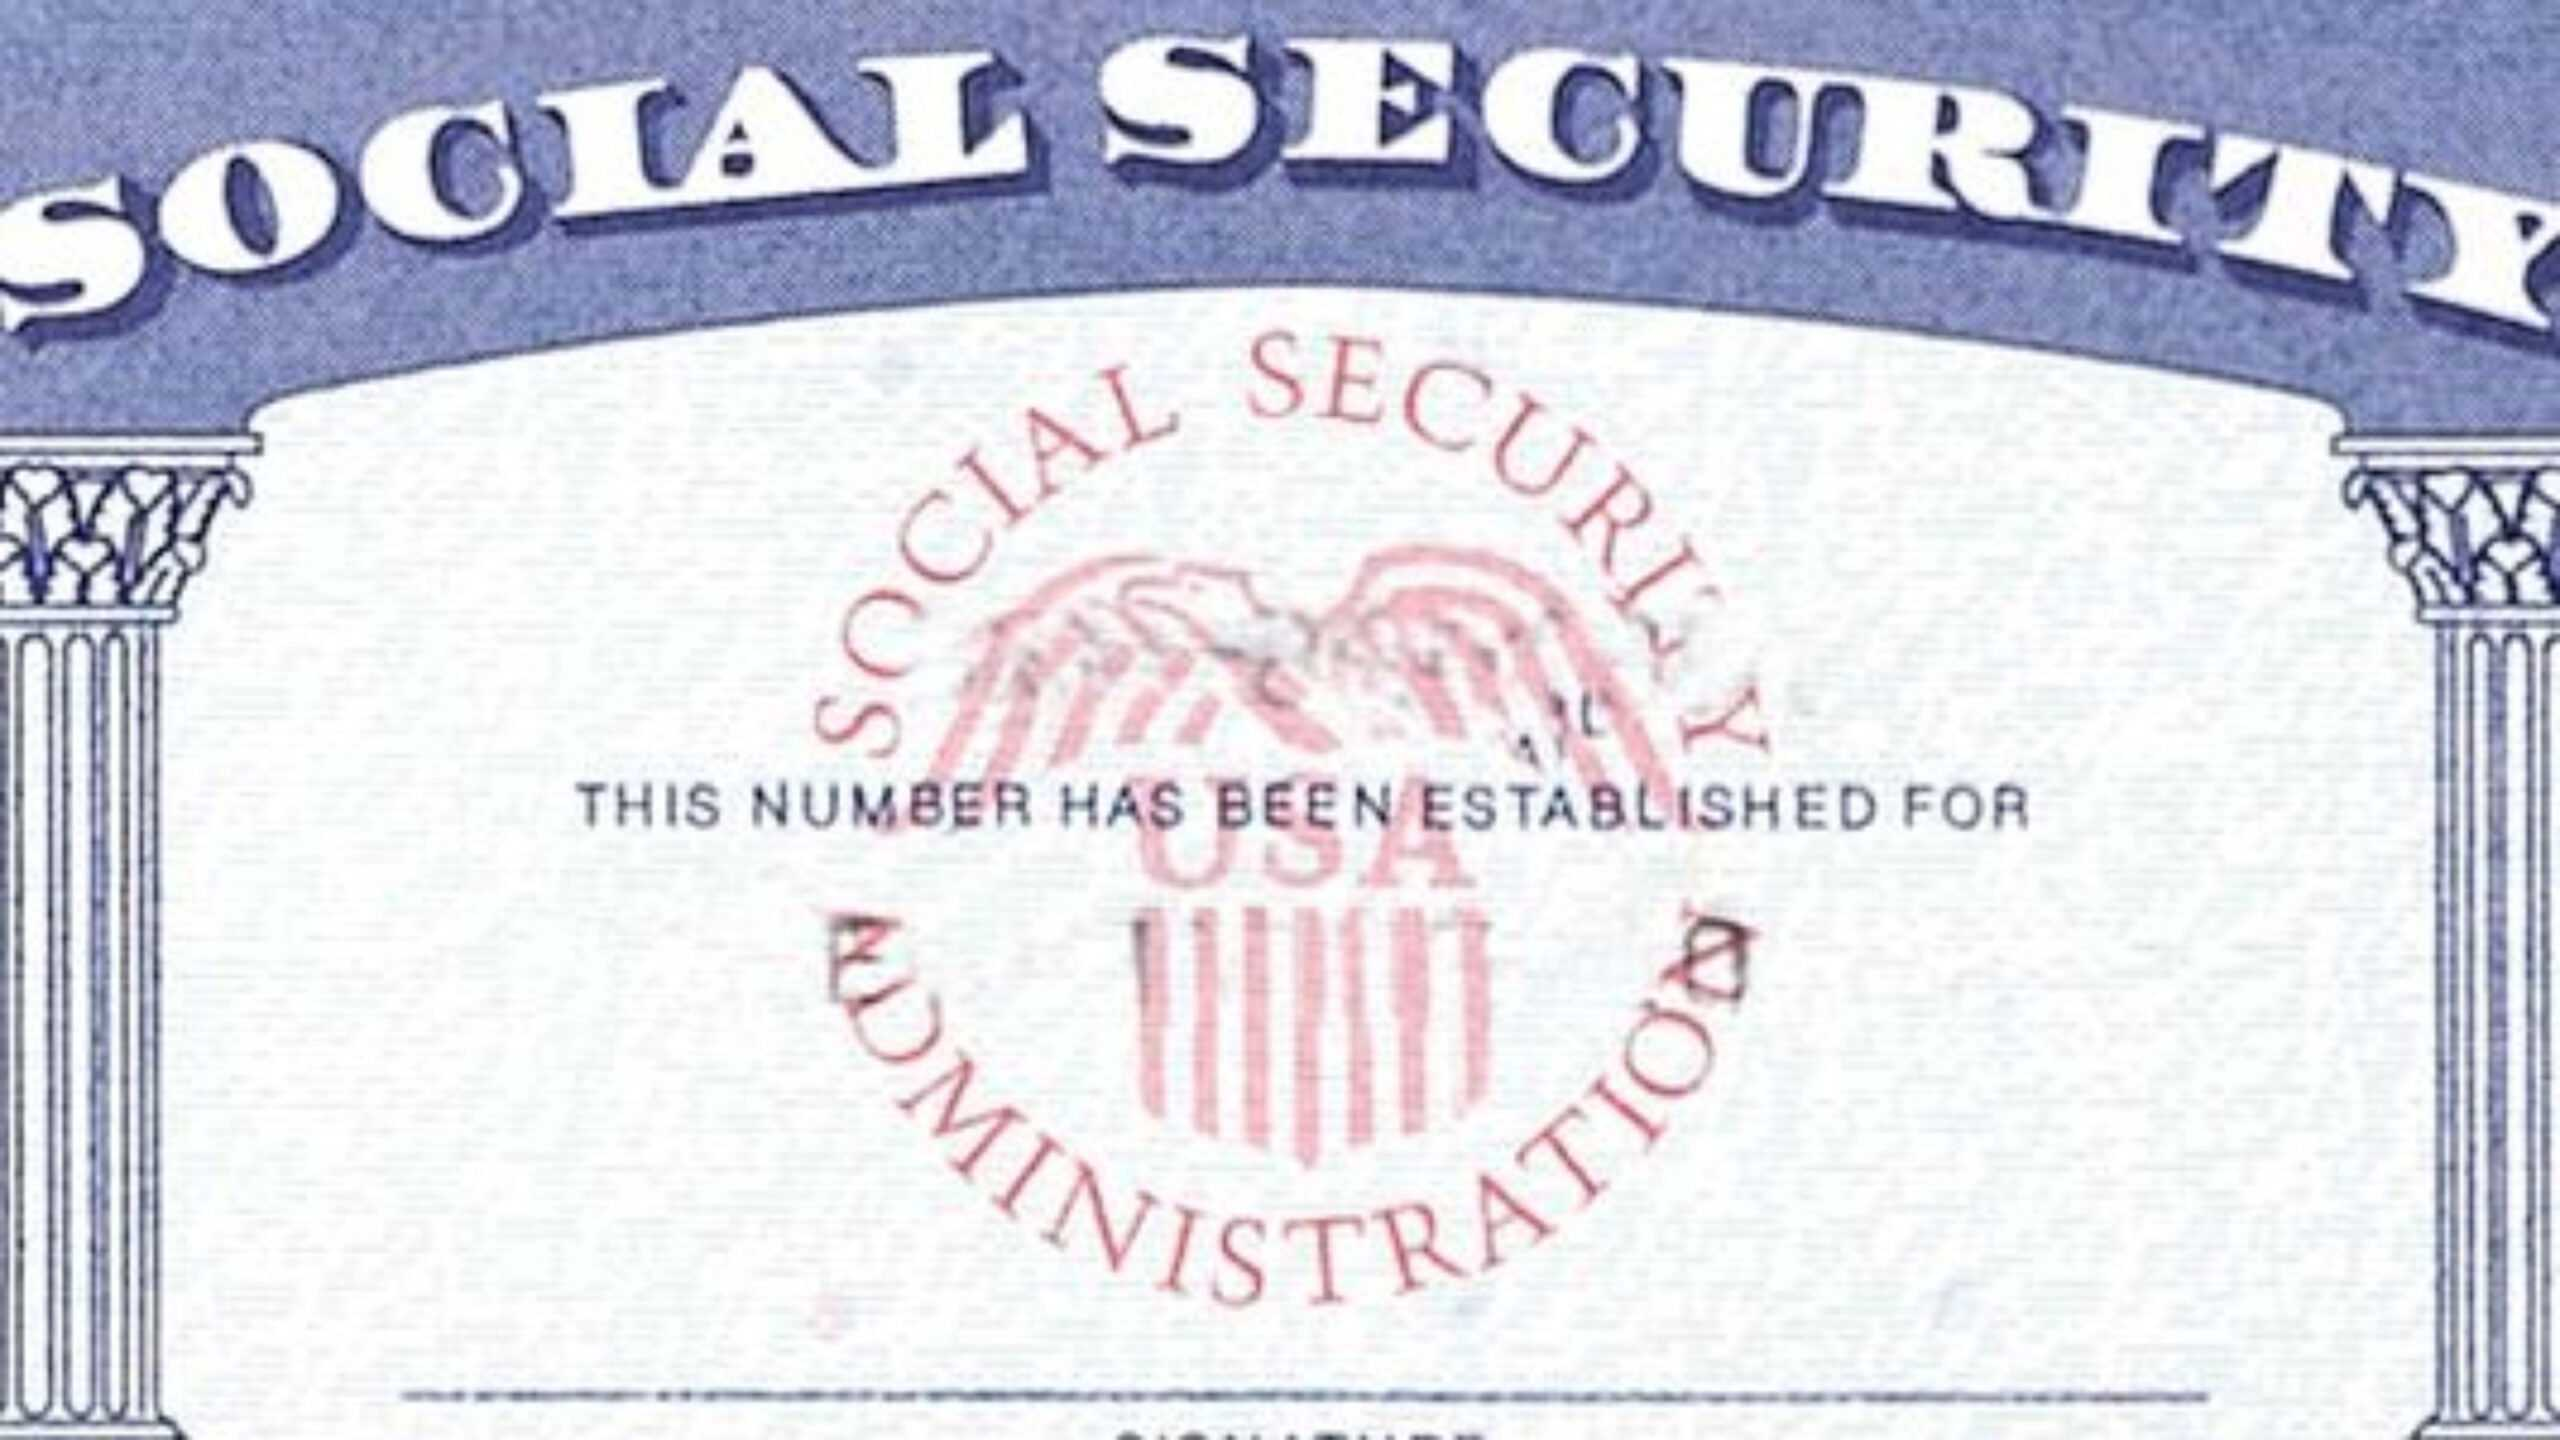 Blank Social Security Card Template Download - Great With Fake Social Security Card Template Download